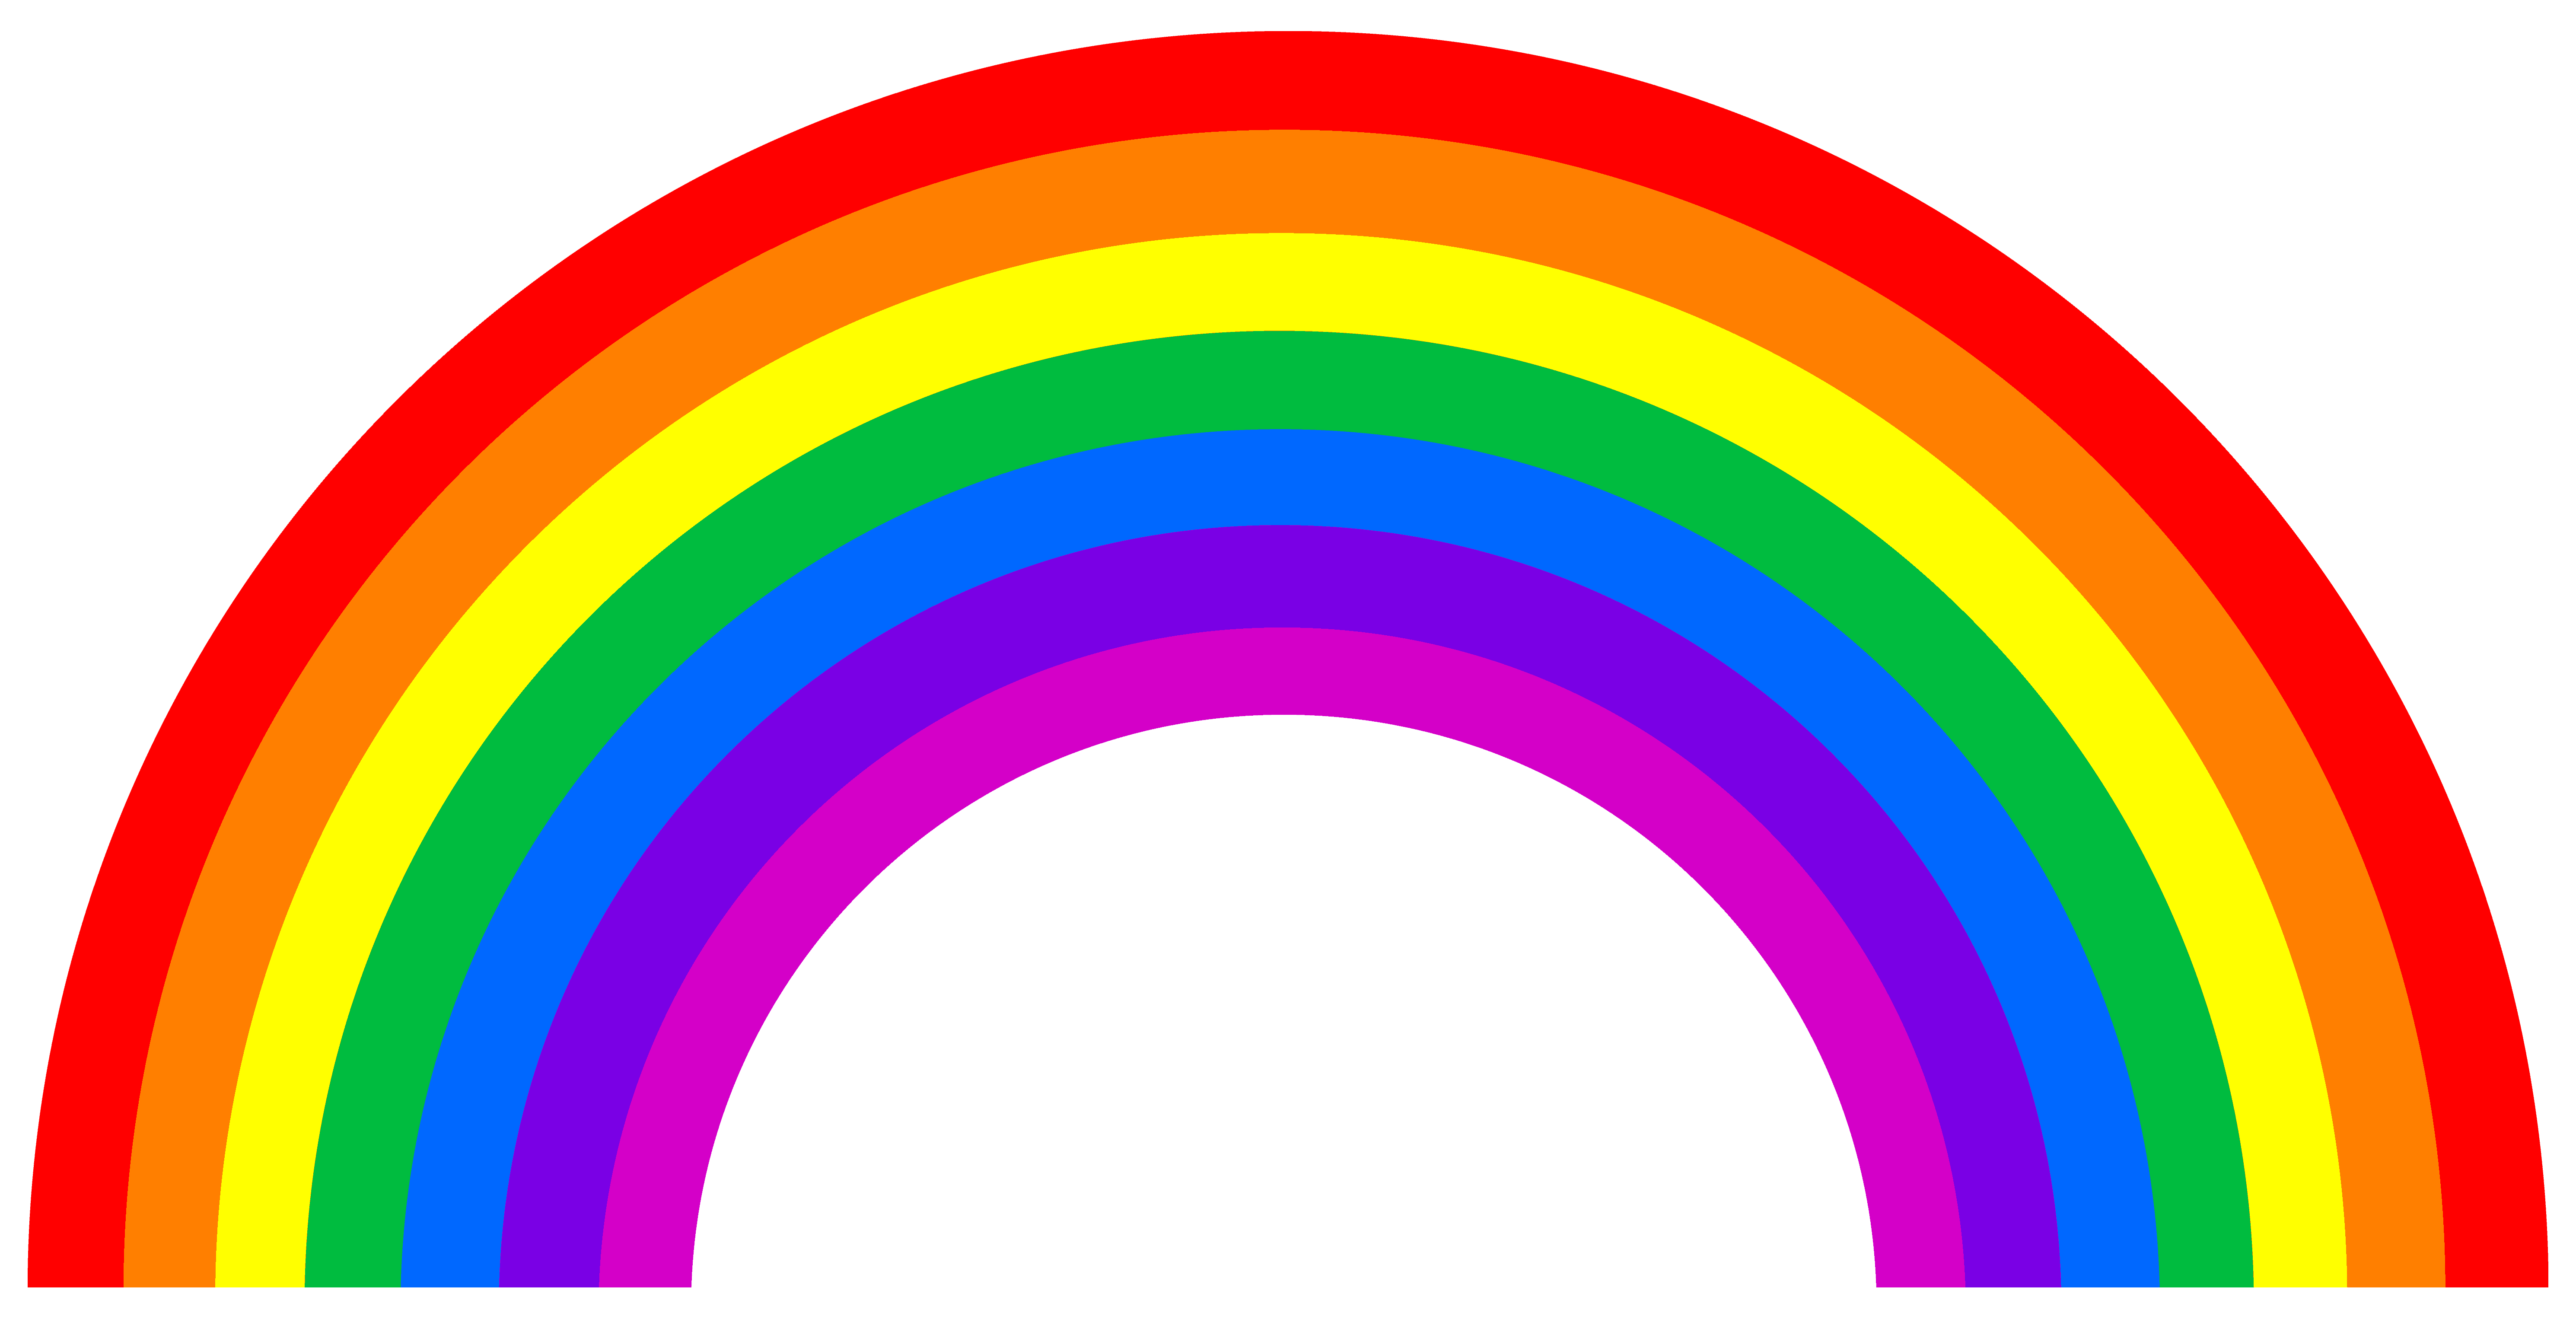 Rainbow Images - Reverse Search